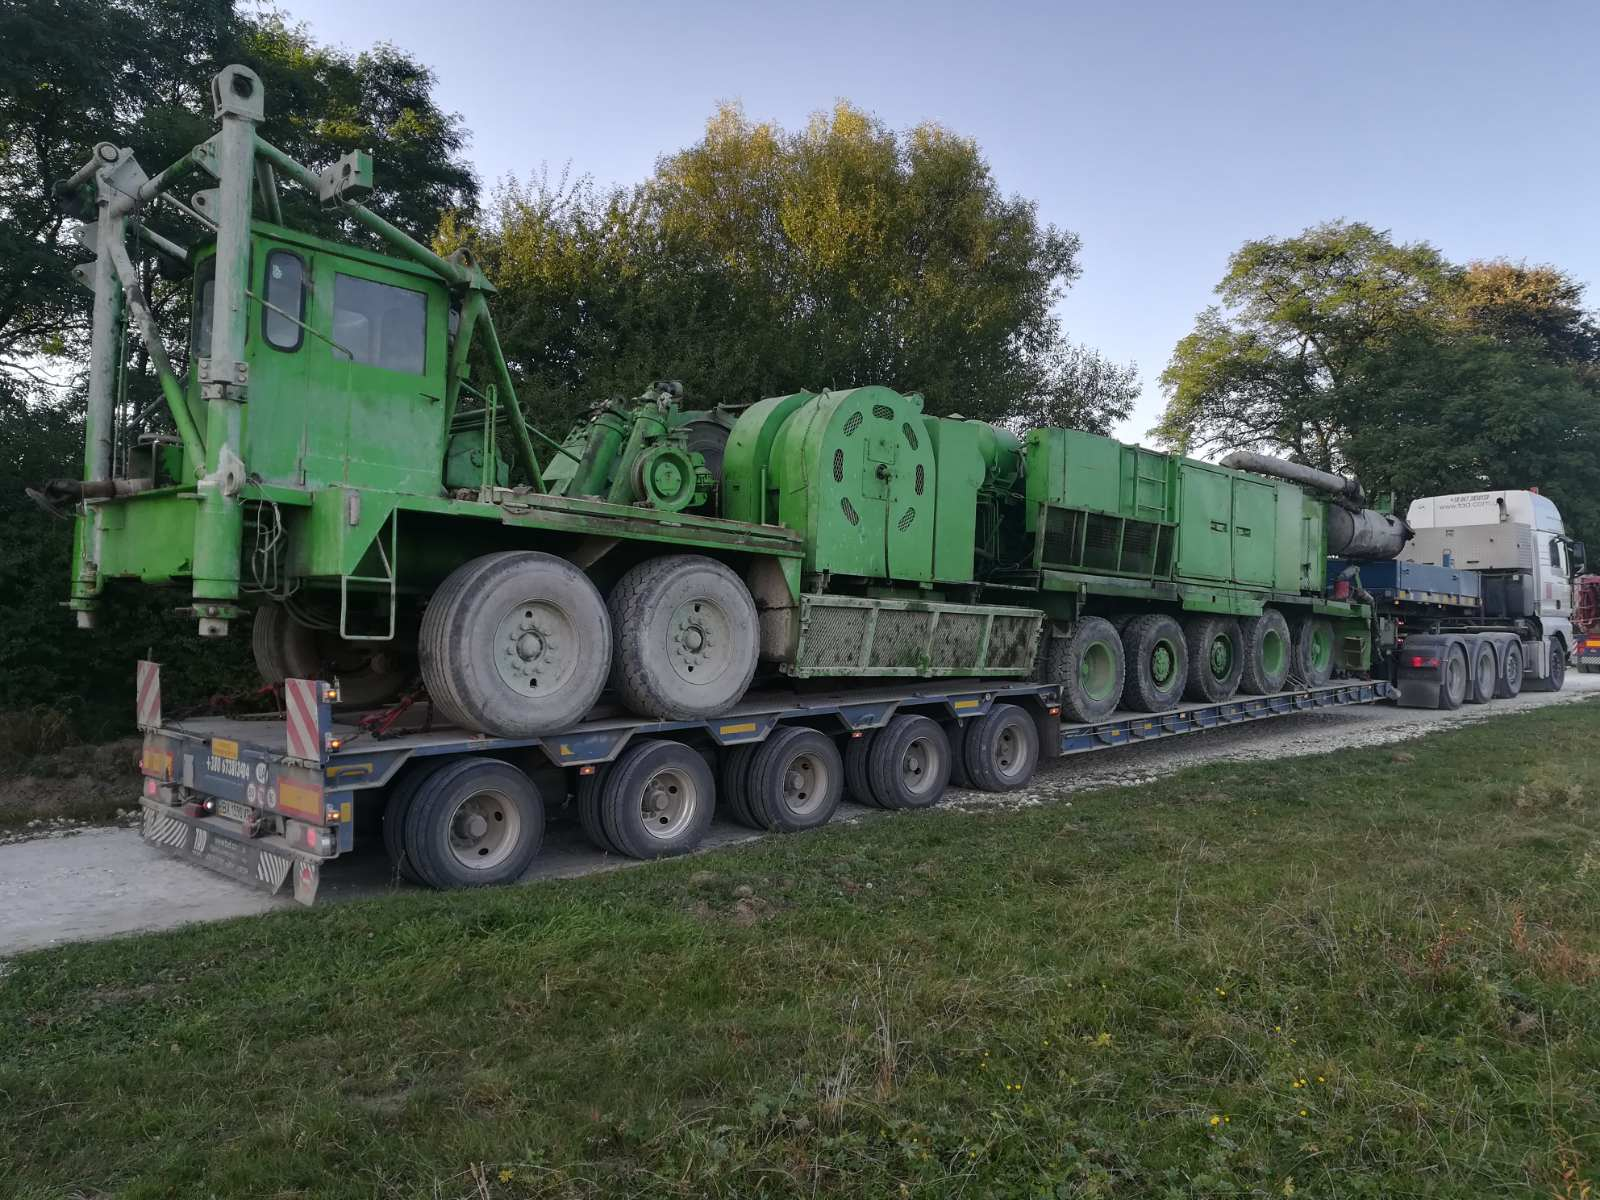 Drilling rig transportation. Dimensions length 15 meters, width 3 meters, height 4 meters -2